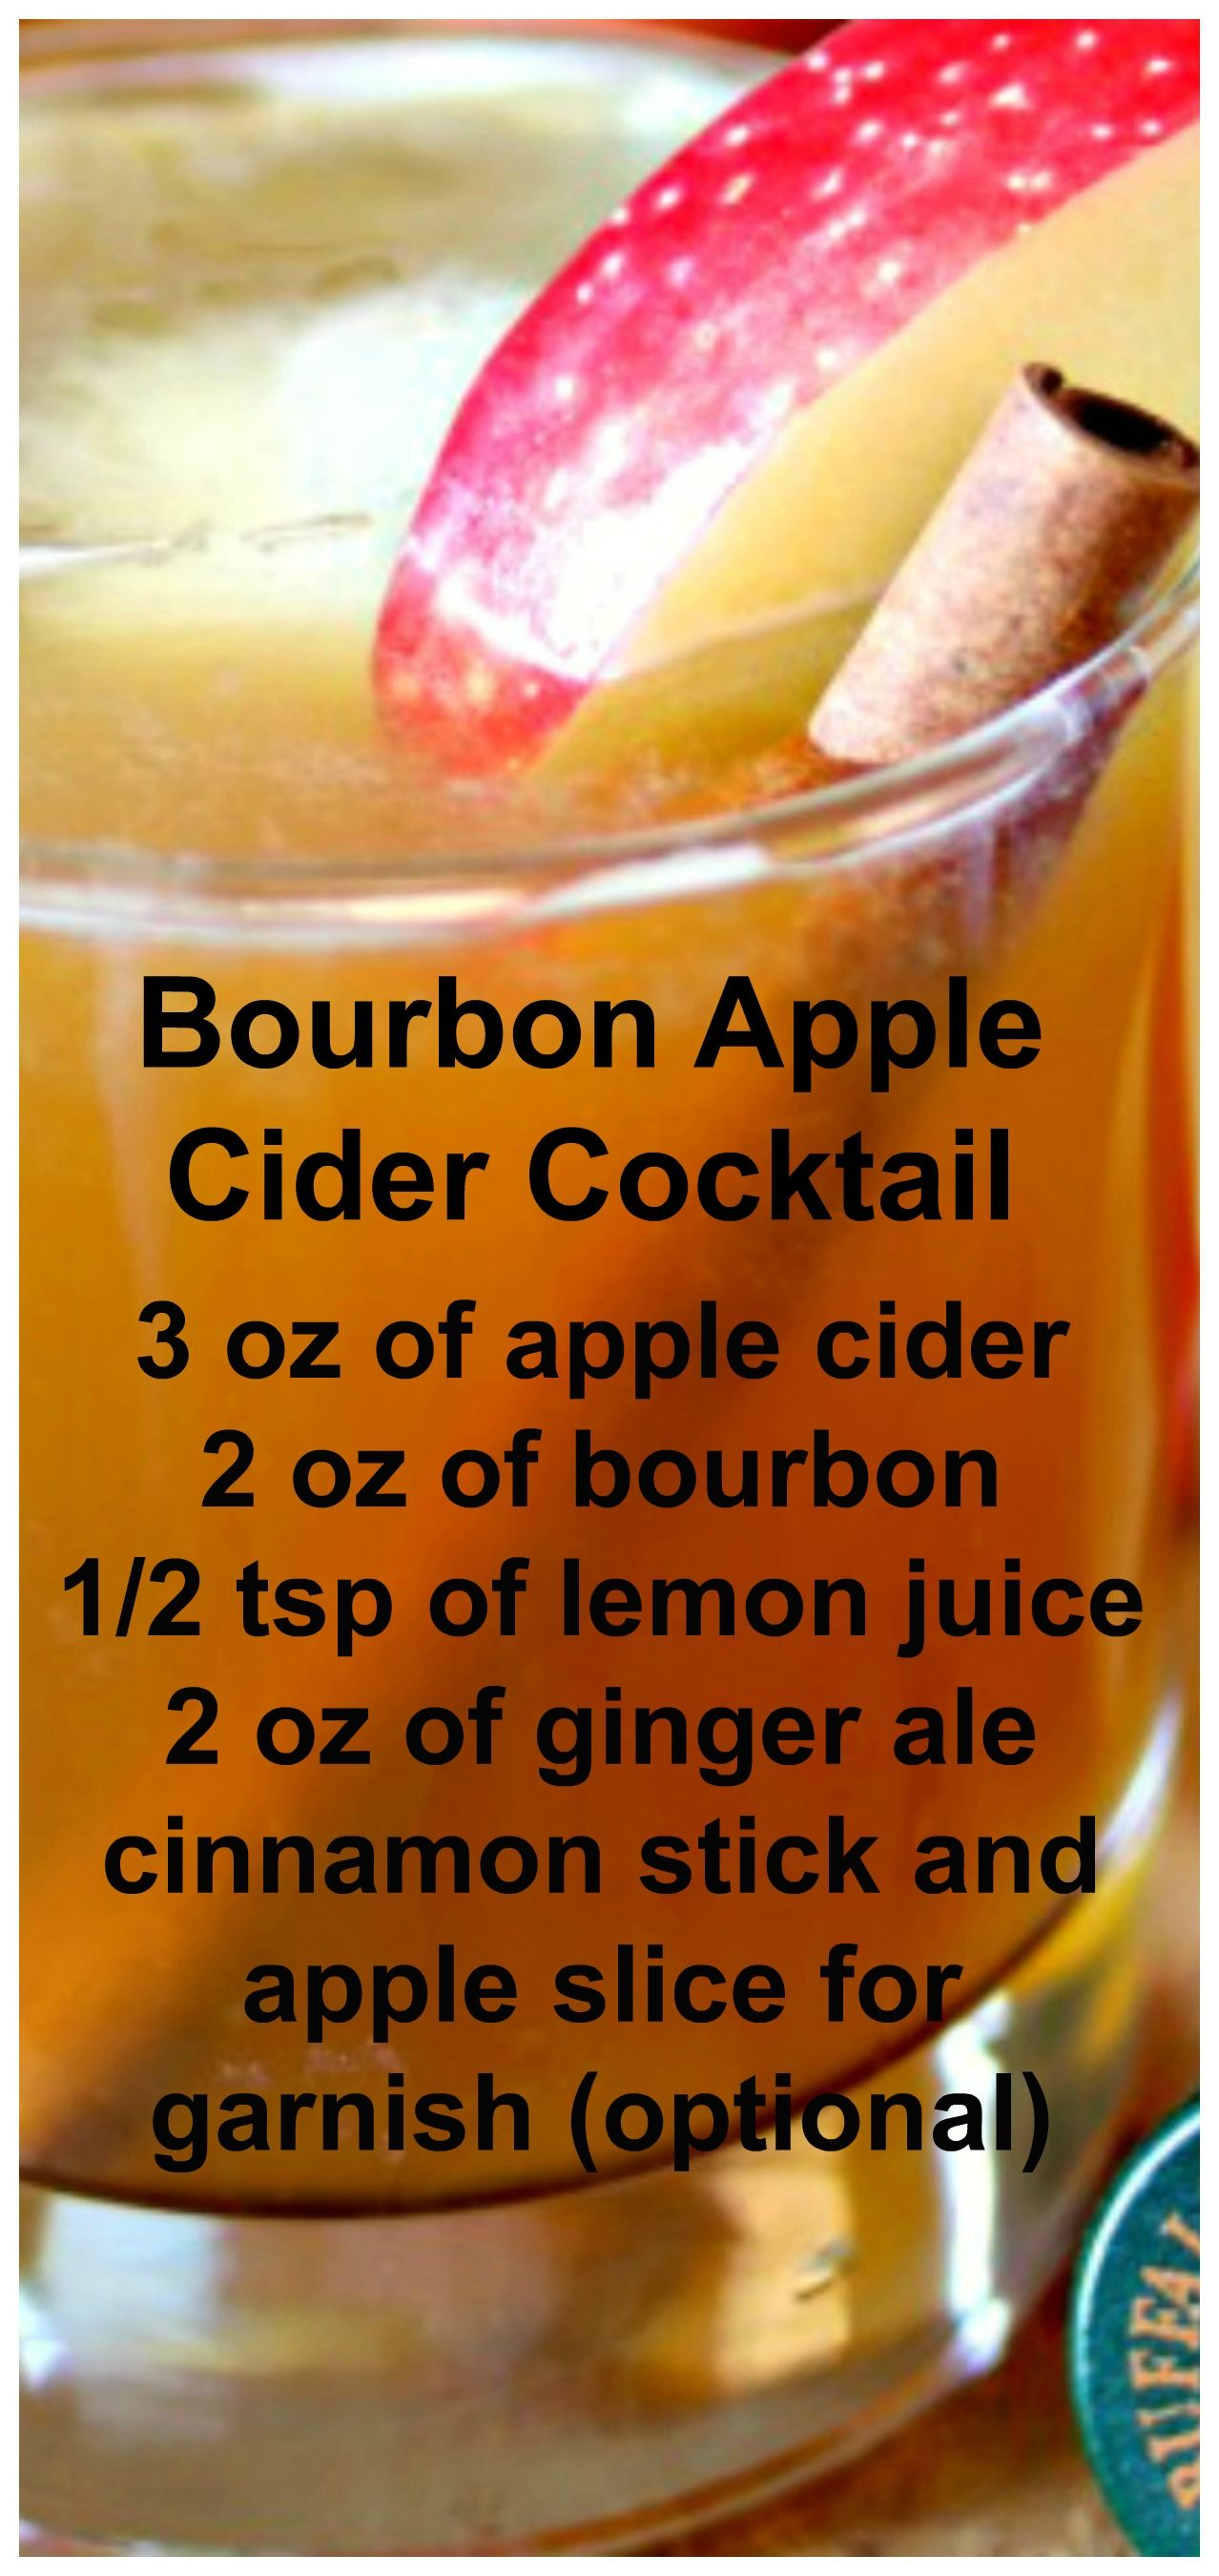 Photo of Bourbon Apple Cider Cocktail